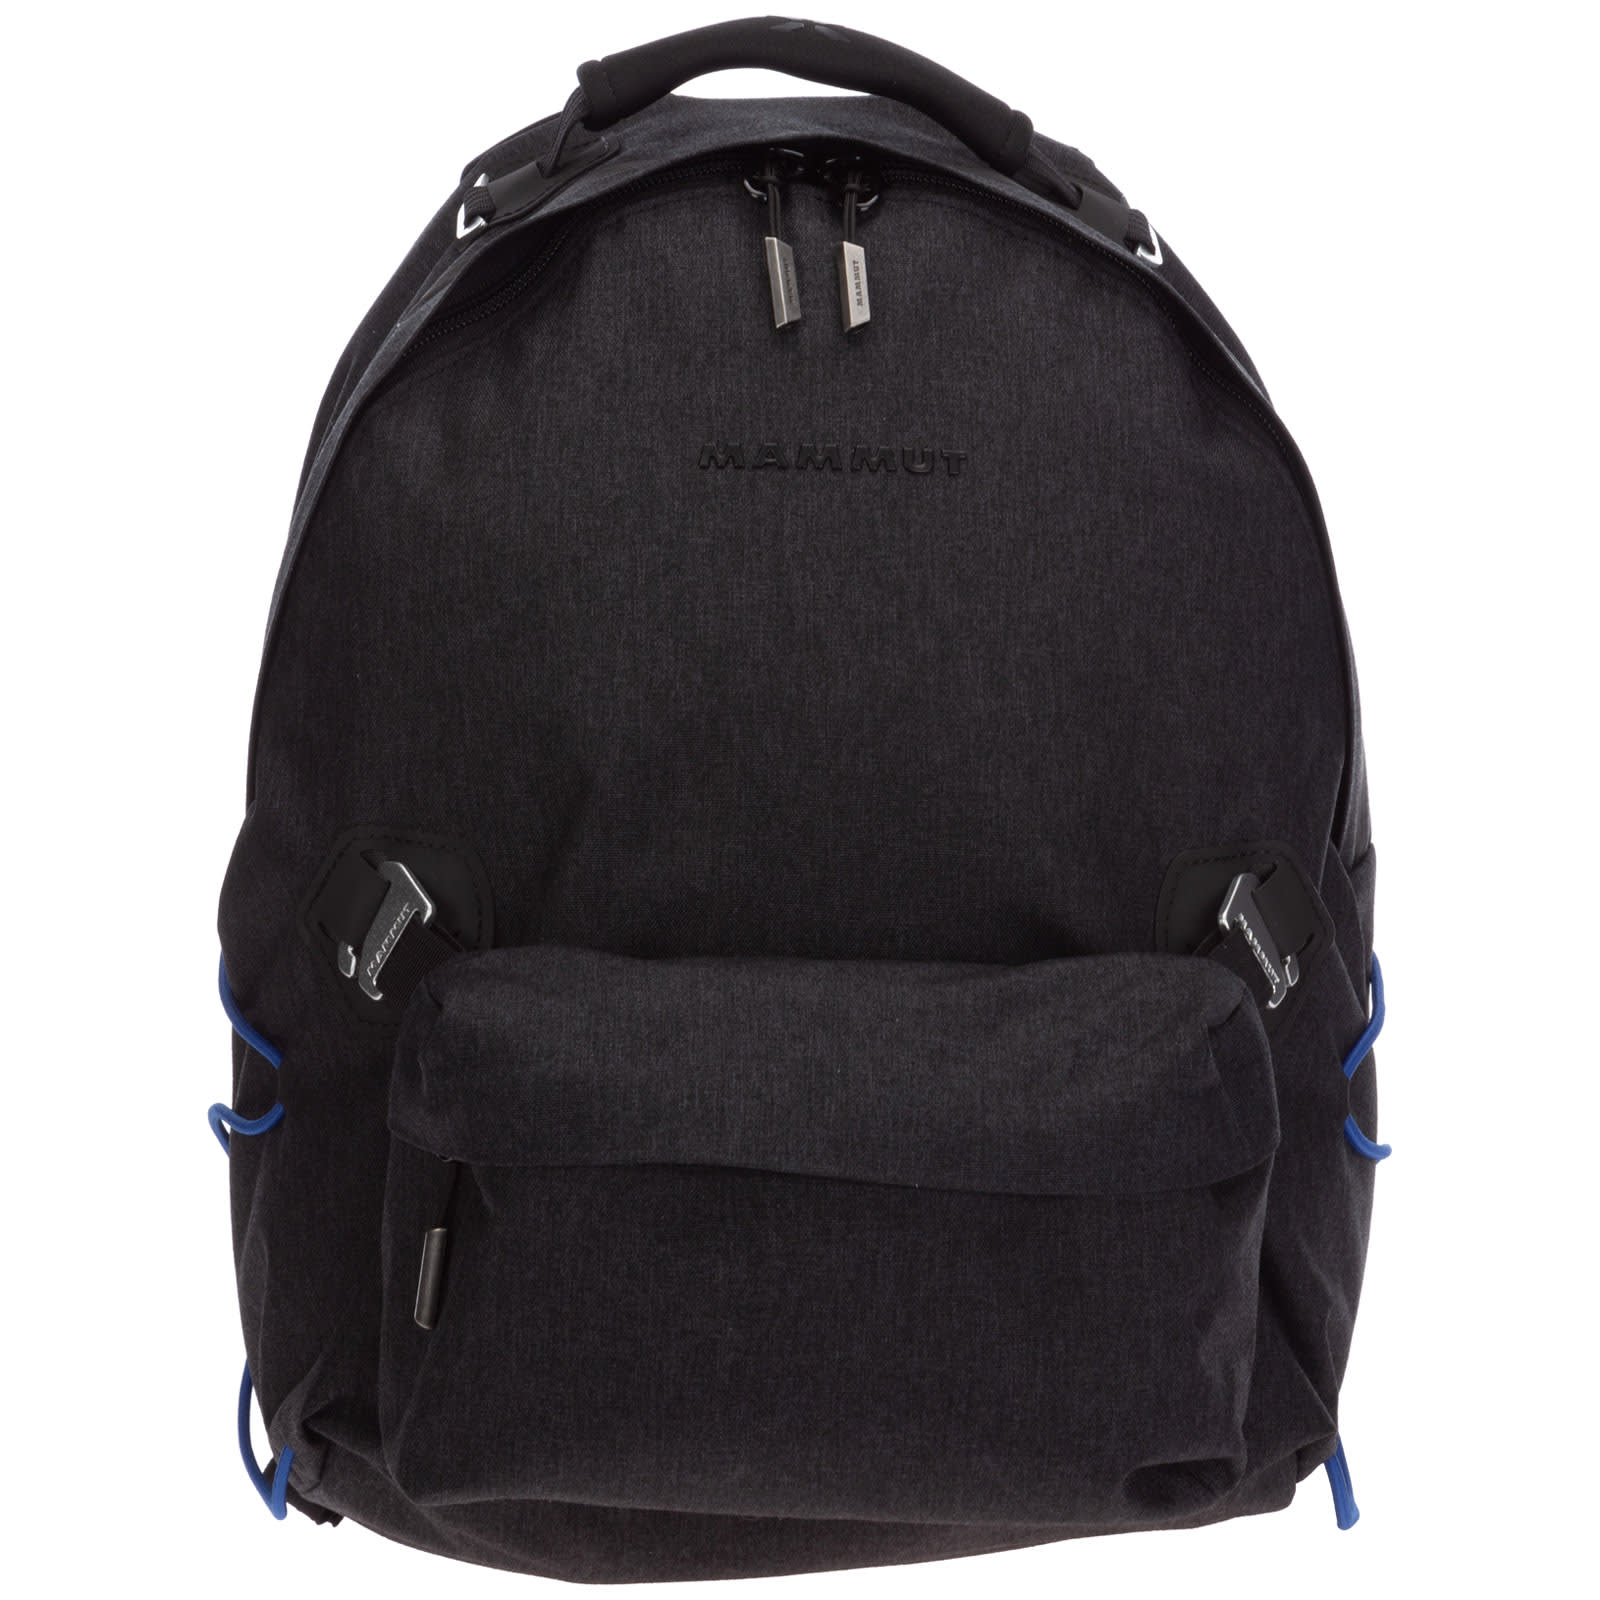 The Pack S 12 L Backpack